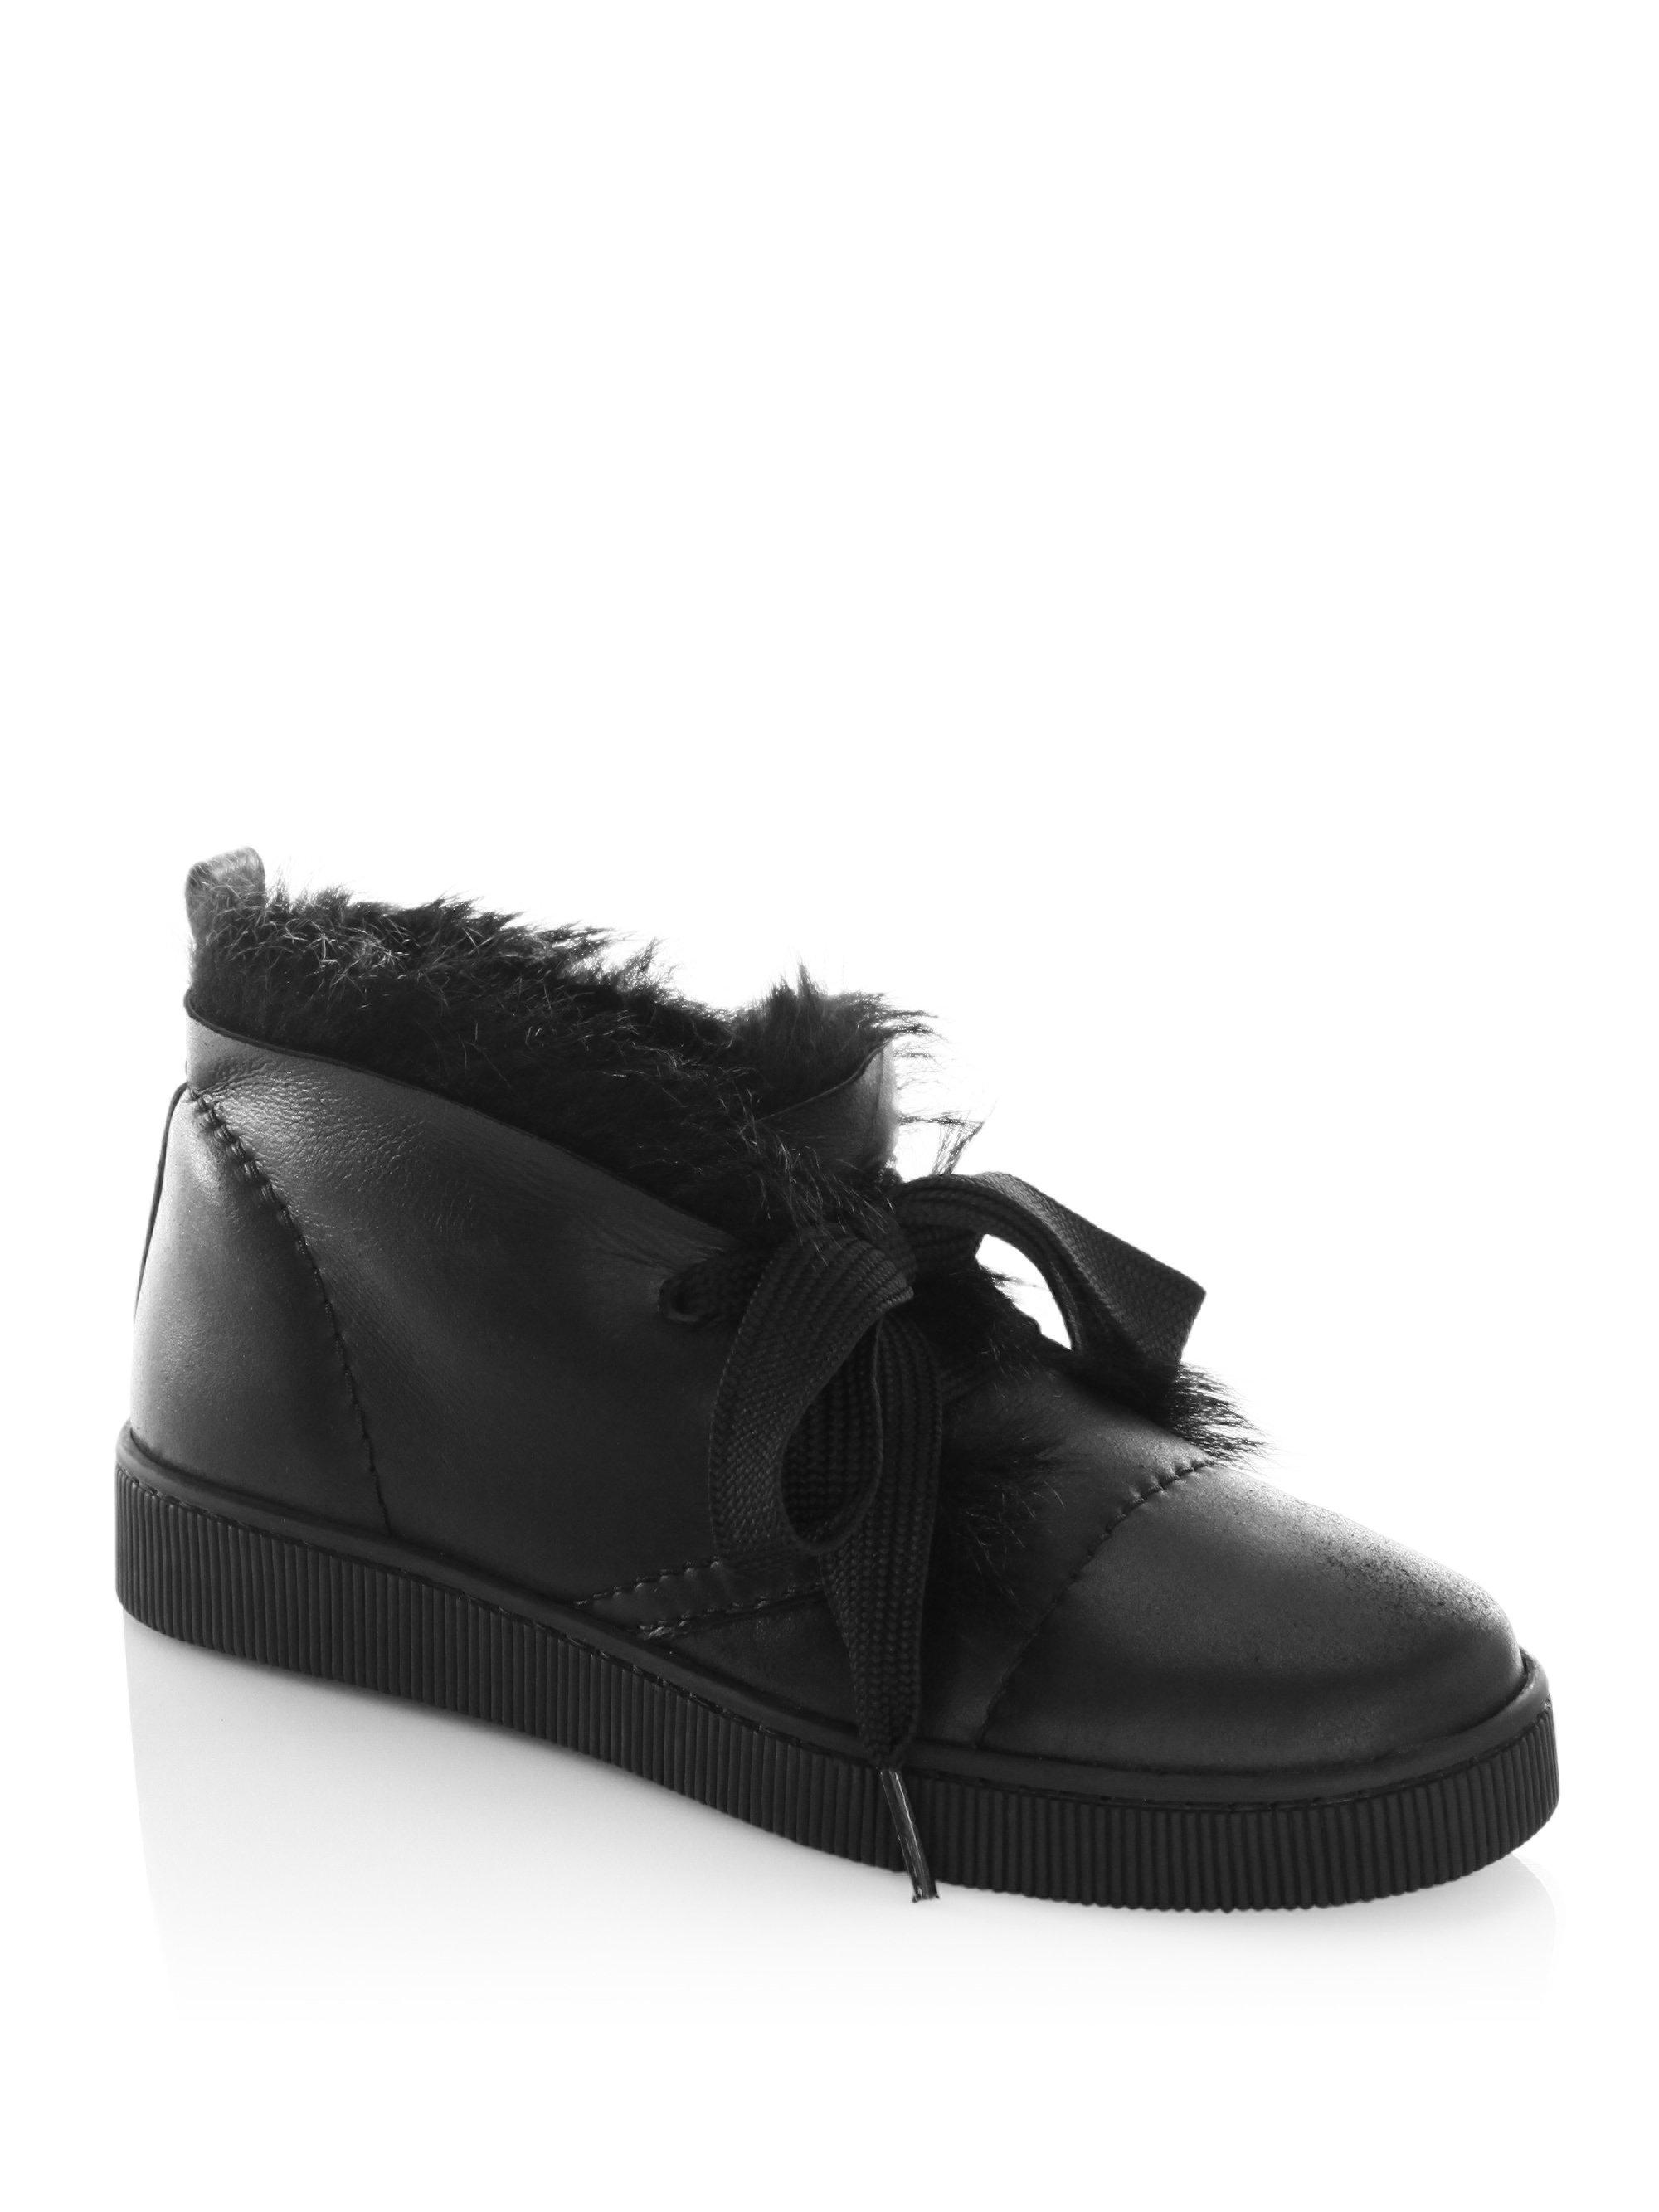 clearance 2014 newest geniue stockist cheap price Pedro Garcia Leather Shearling-Trimmed Sneakers discount Manchester buy cheap best sale clearance 2014 new HFrZ9GInWY